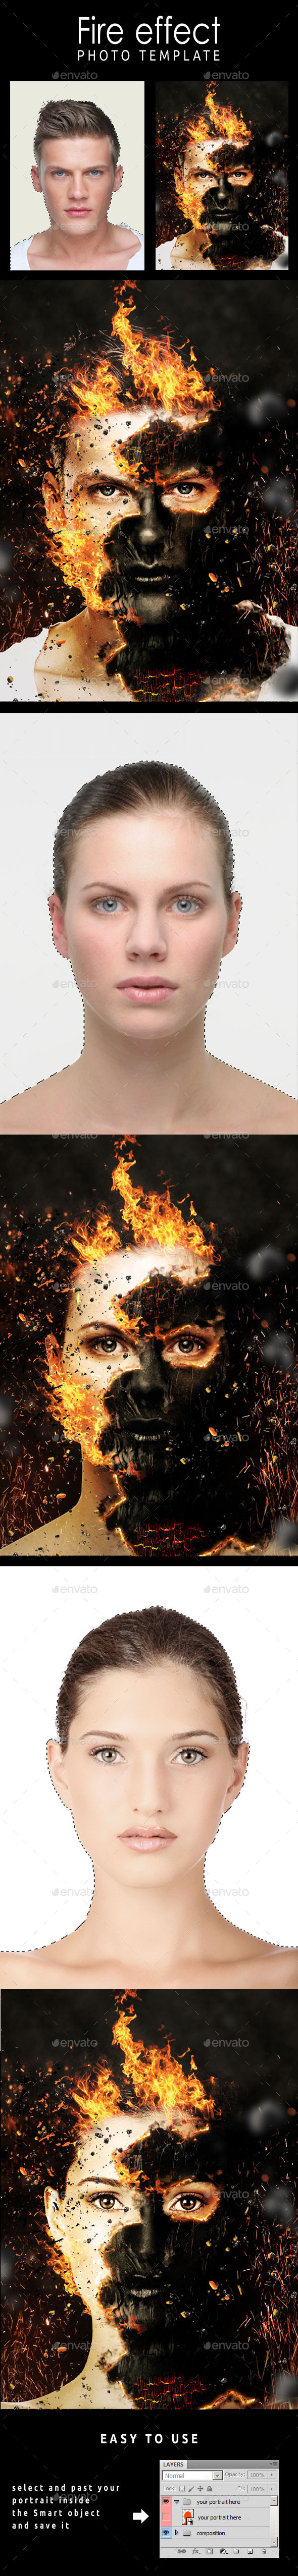 GraphicRiver Fire Effect Photo Template 11108155